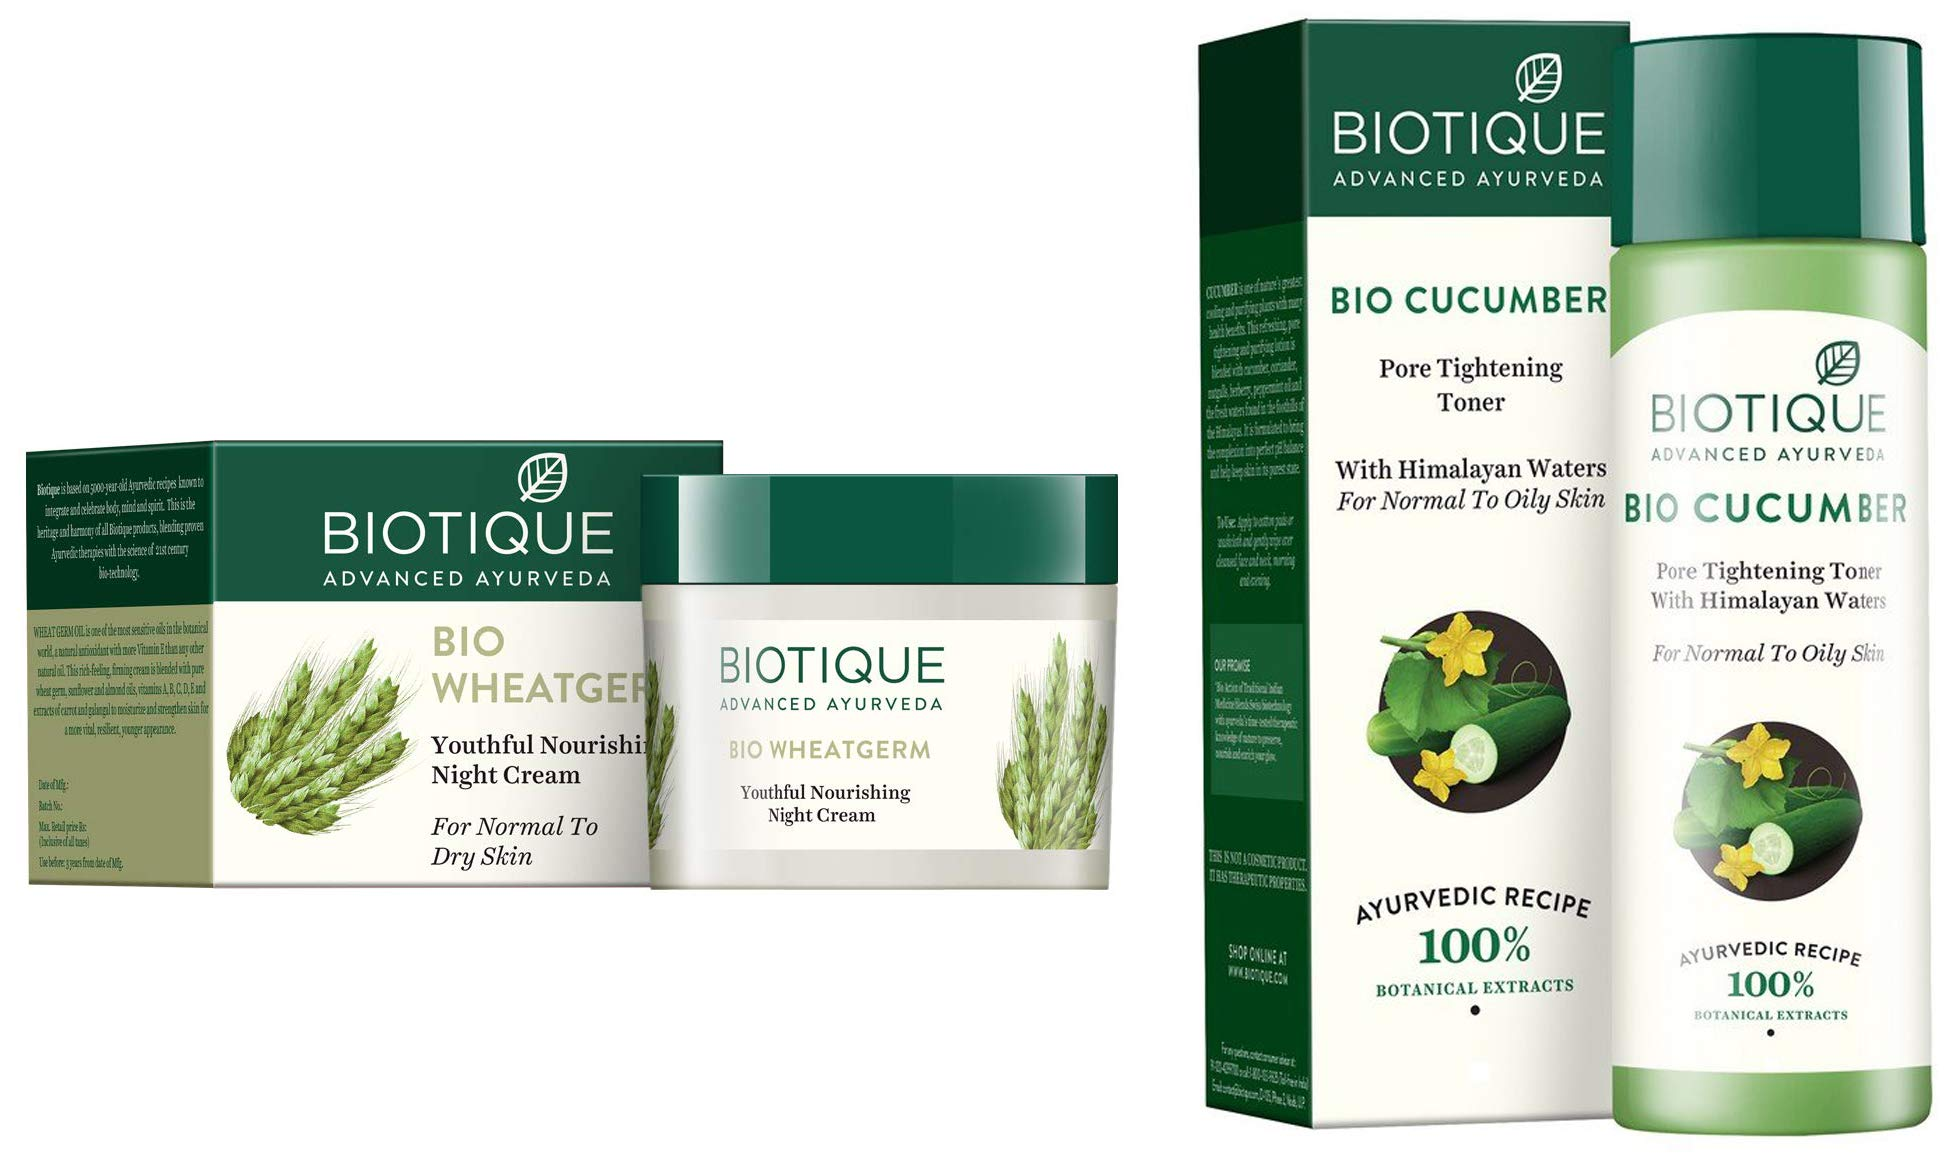 Biotique Bio Wheat Germ FIRMING FACE and BODY NIGHT CREAM For Normal To Dry Skin, 50G and Biotique Bio Cucumber Pore Tightening Toner, 120ml product image